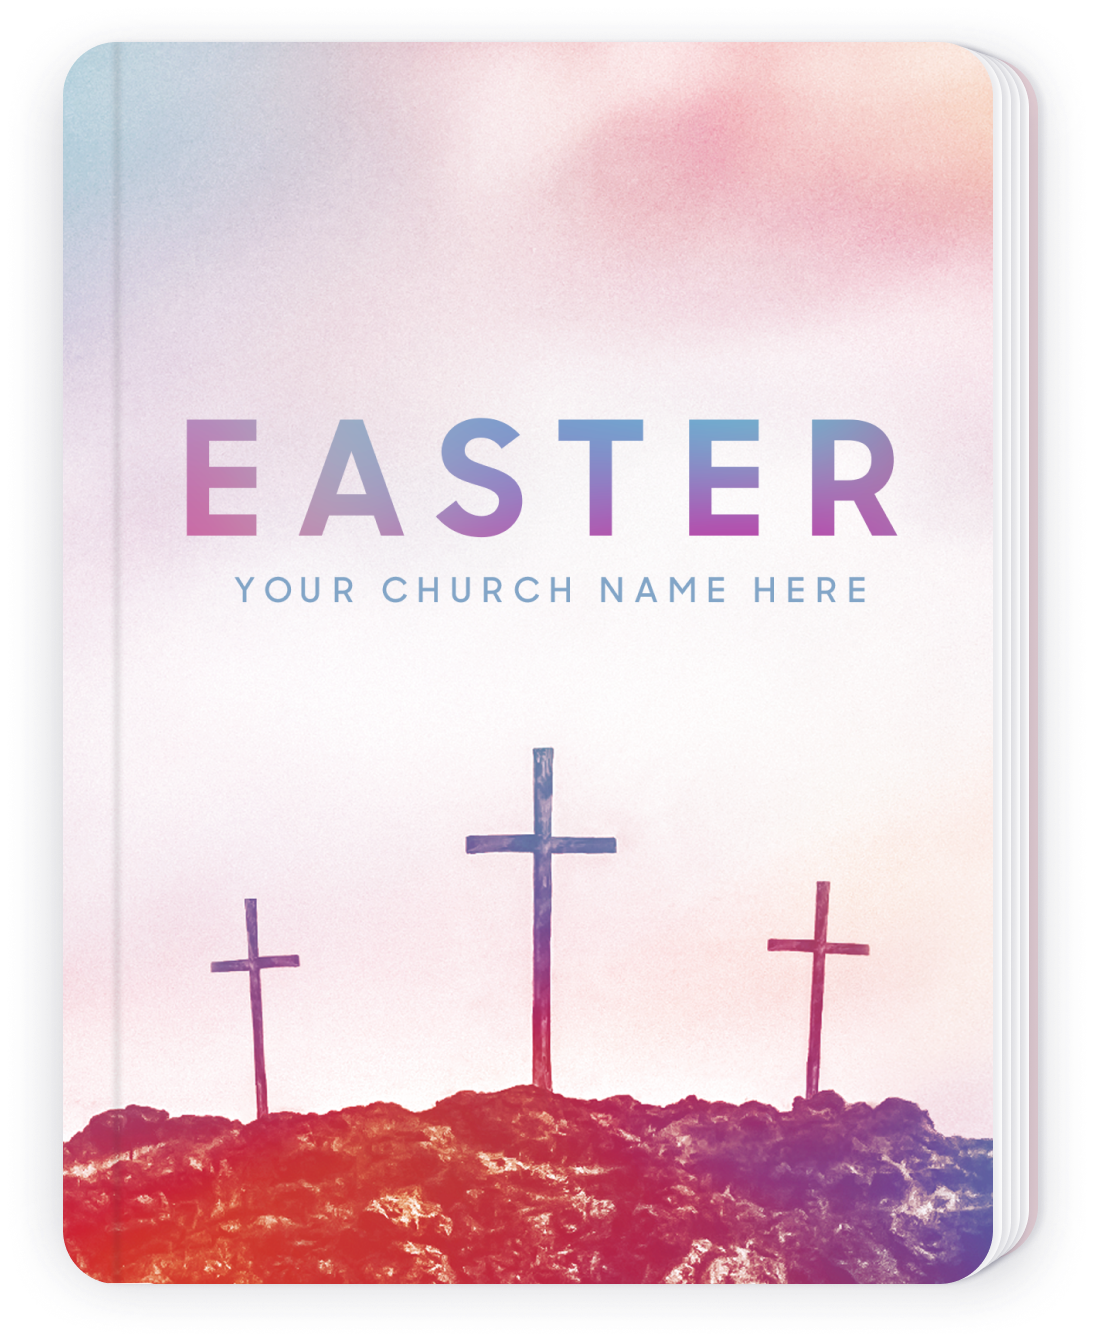 Get access to everything you'll need to have an amazing service at your church this Easter! Take the stress out of planning your Easter service with our bundle today!